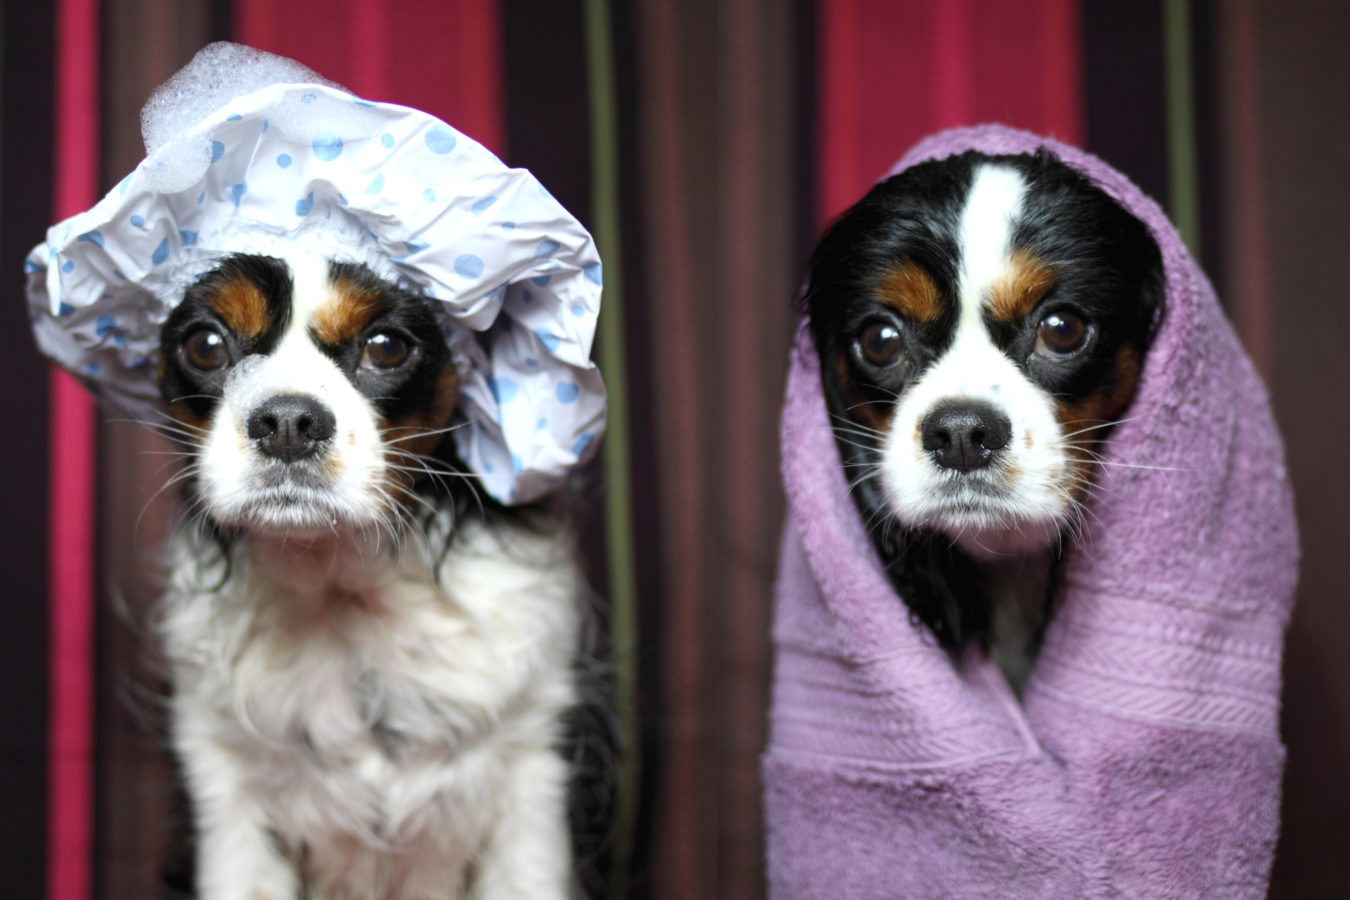 Pet grooming services in your city that will pamper your pets silly